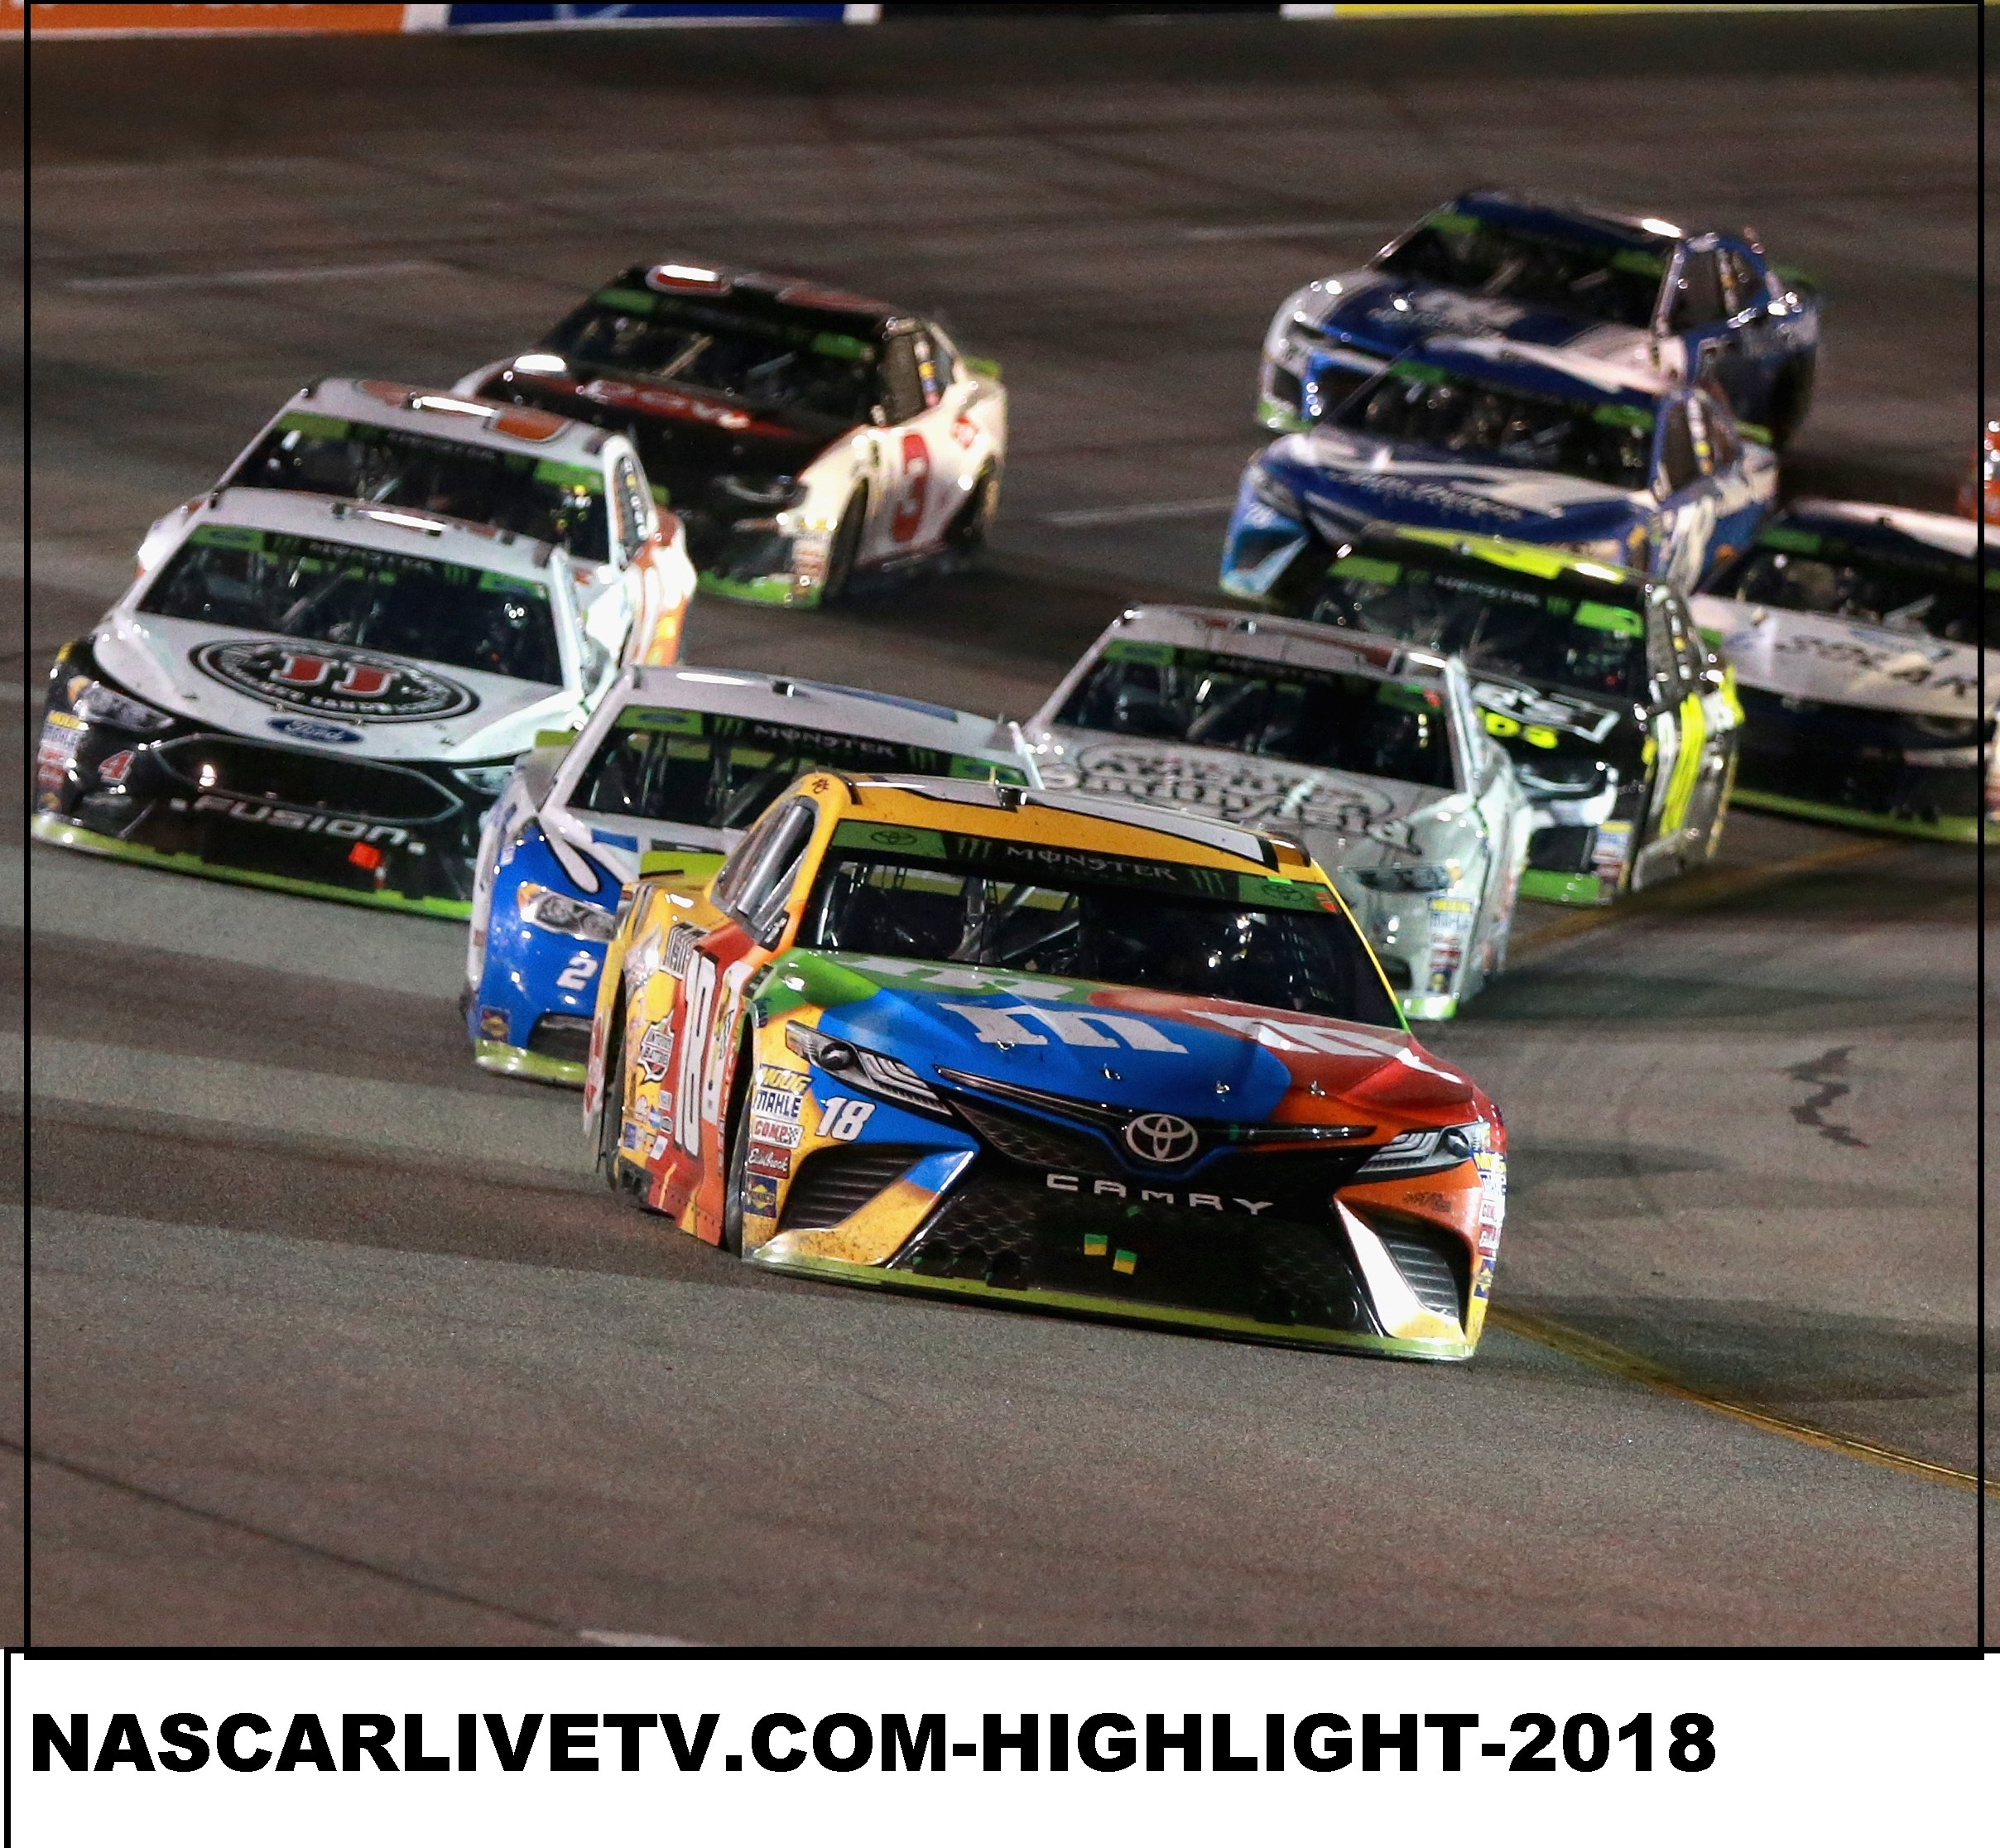 federated-auto-parts-400-richmond-raceway-highlight-2018